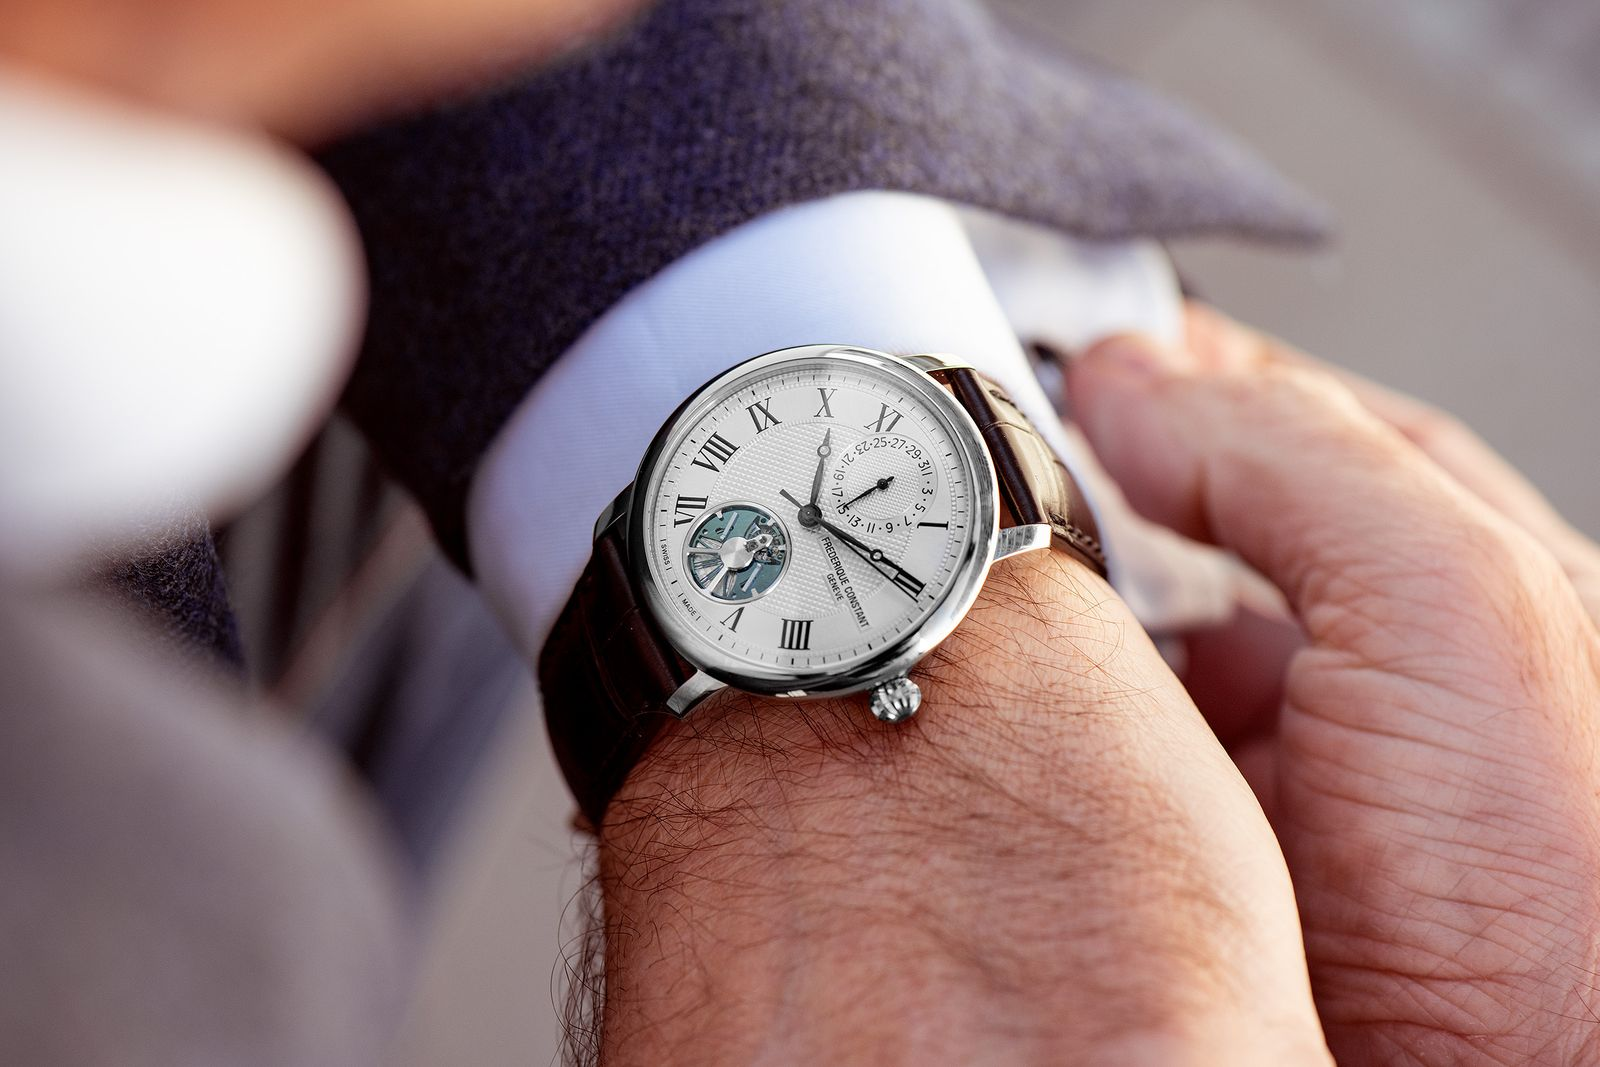 SIHH | Watches and Wonders | Frédérique Constant Slimline Monolithic Manufacture